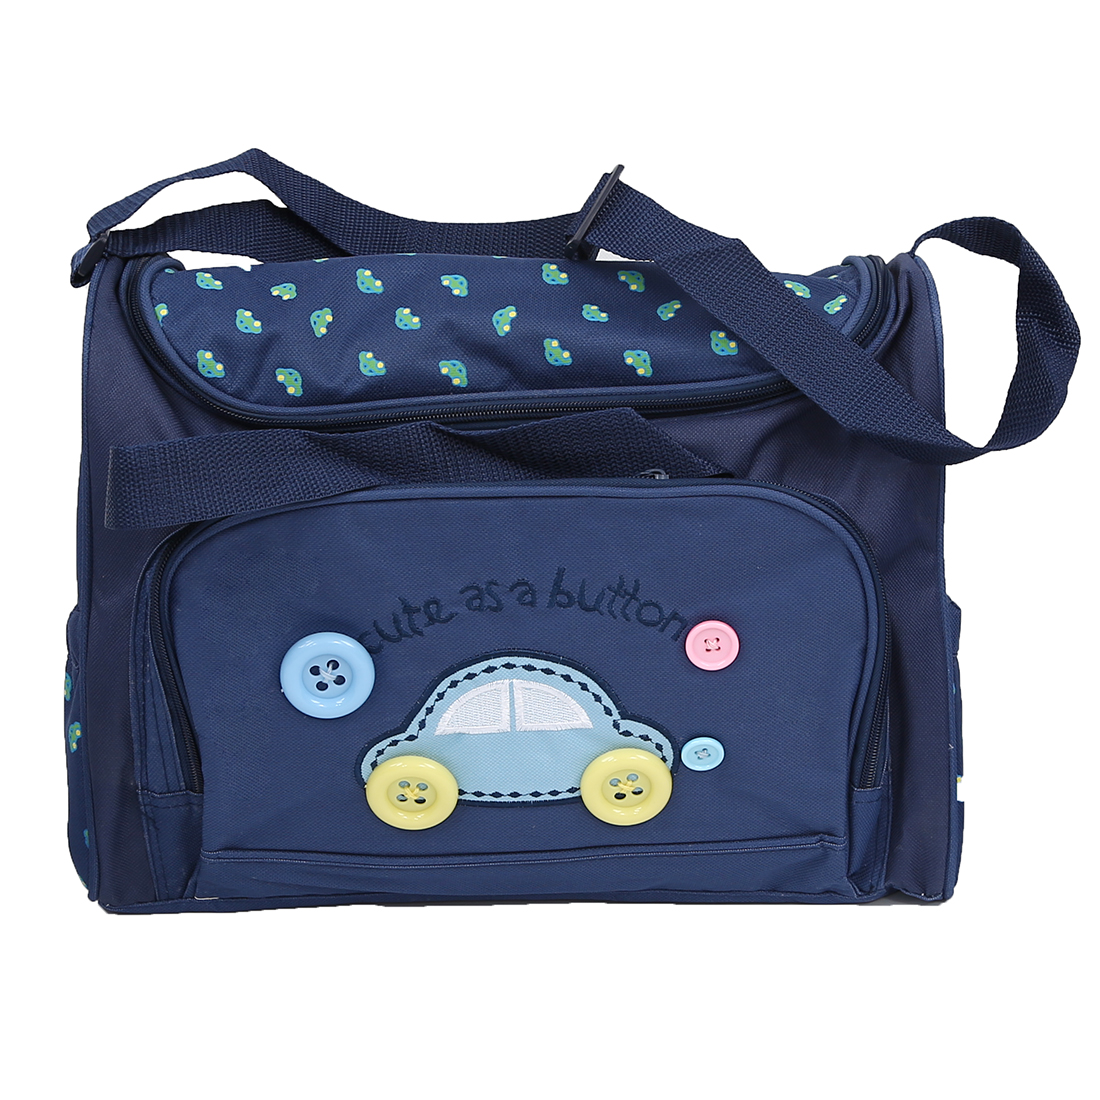 4pcs Cute As Button Embroidery Baby Nappy Changing Bags Sets Dark Blue